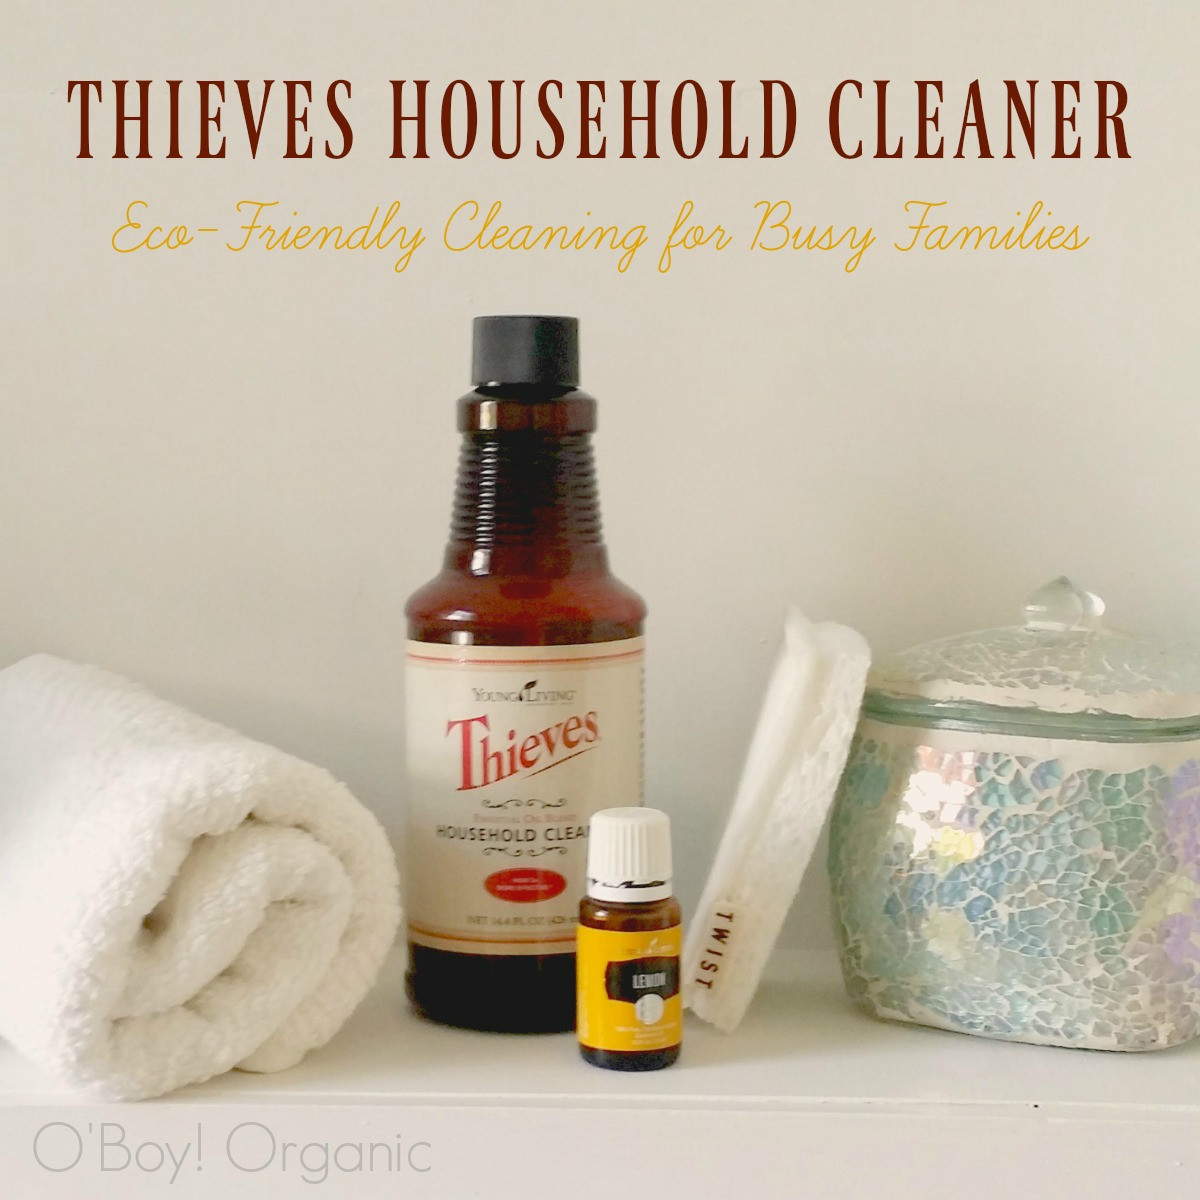 10 Ways to Use Thieves Household Cleaner Everyday